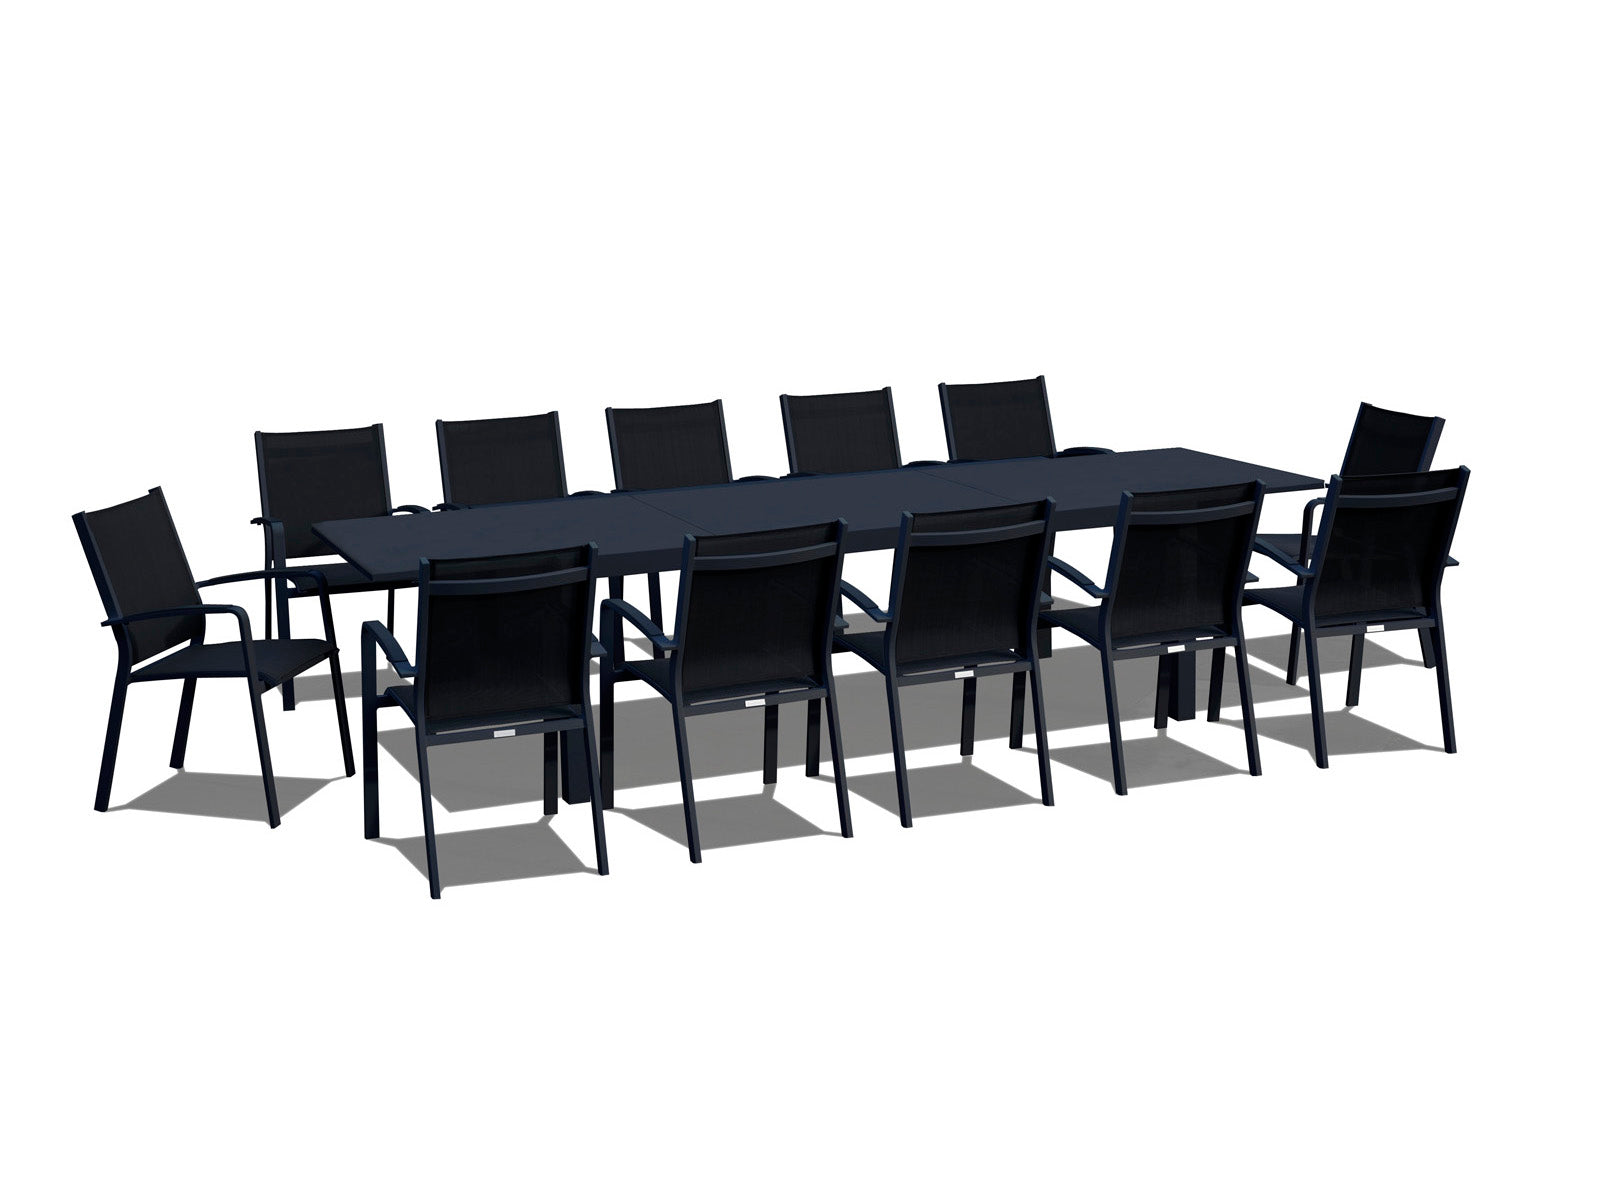 Wondrous 13 Piece Extendable Modern Patio Dining Set Black On Black Inzonedesignstudio Interior Chair Design Inzonedesignstudiocom